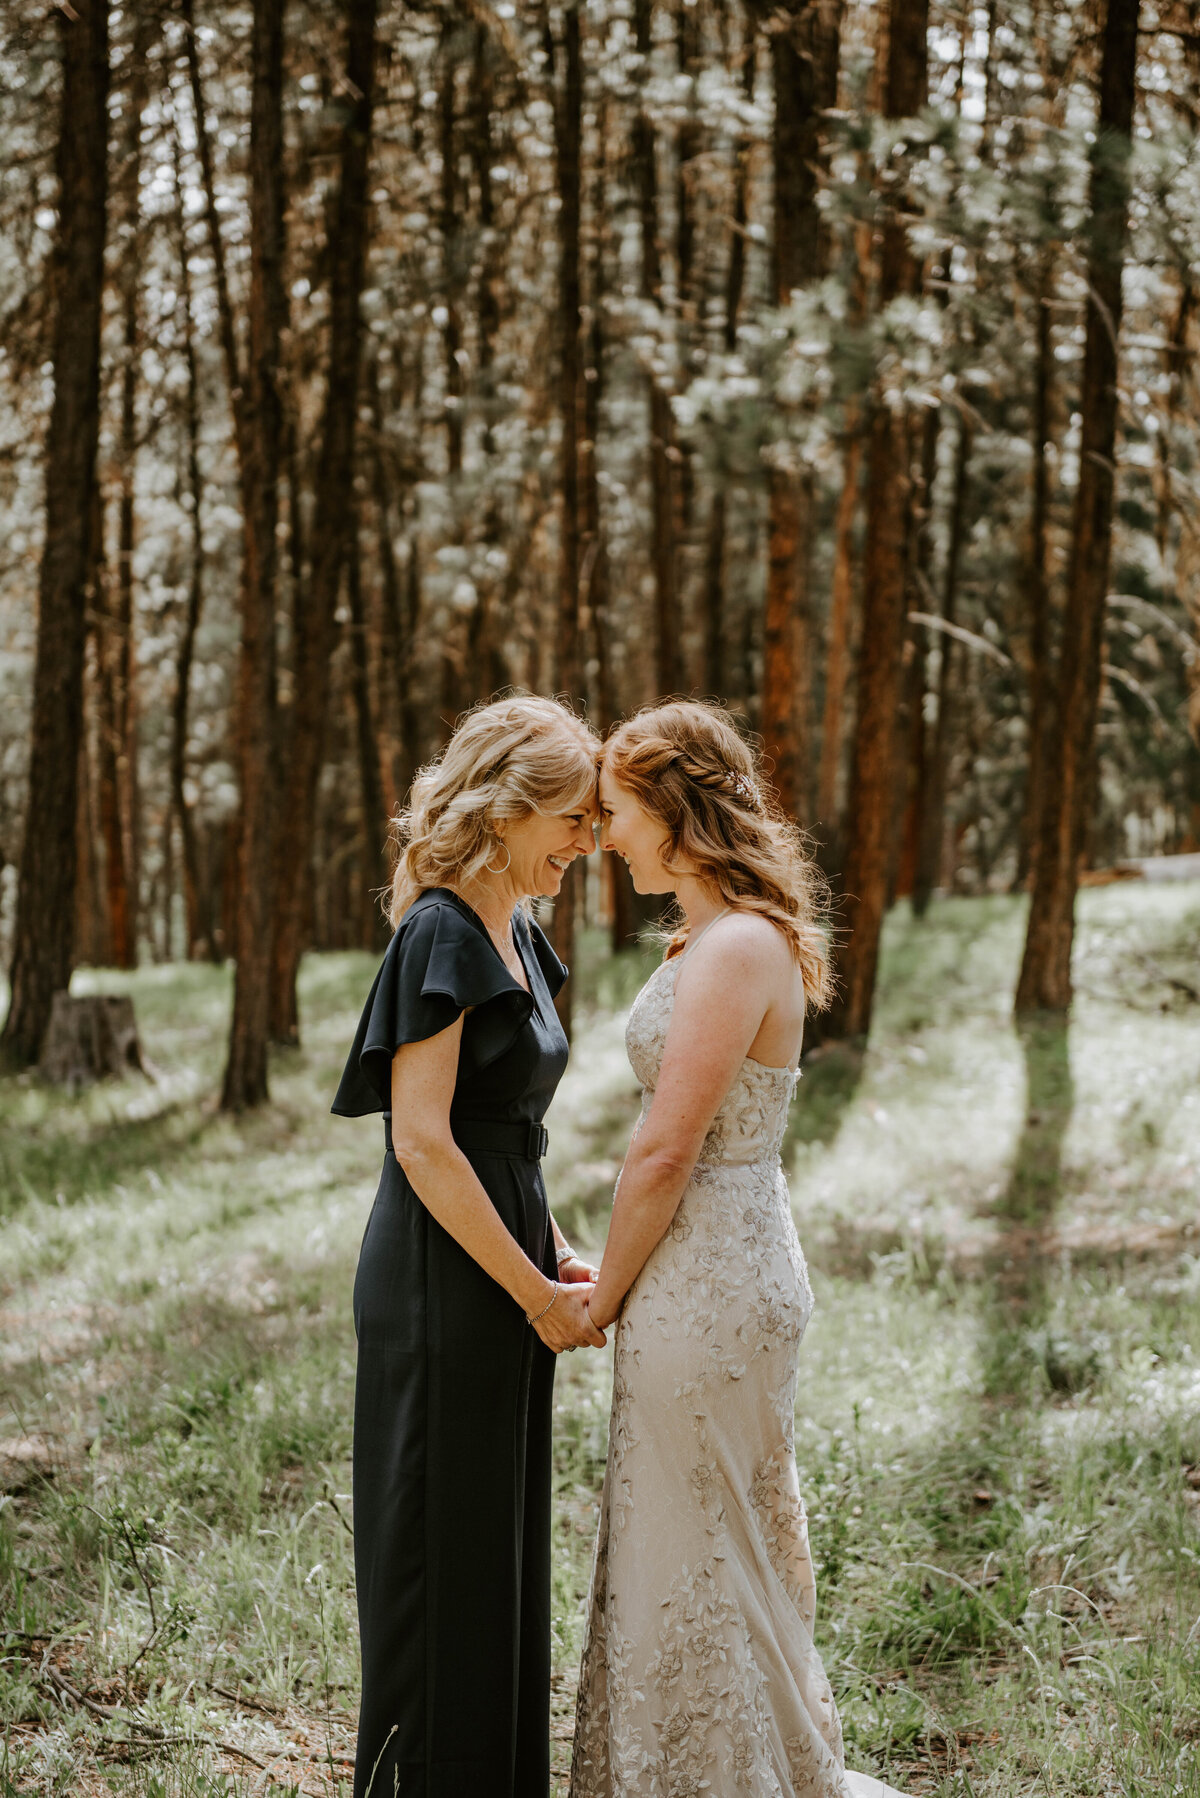 ochoco-forest-central-oregon-elopement-pnw-woods-wedding-covid-bend-photographer-inspiration2811